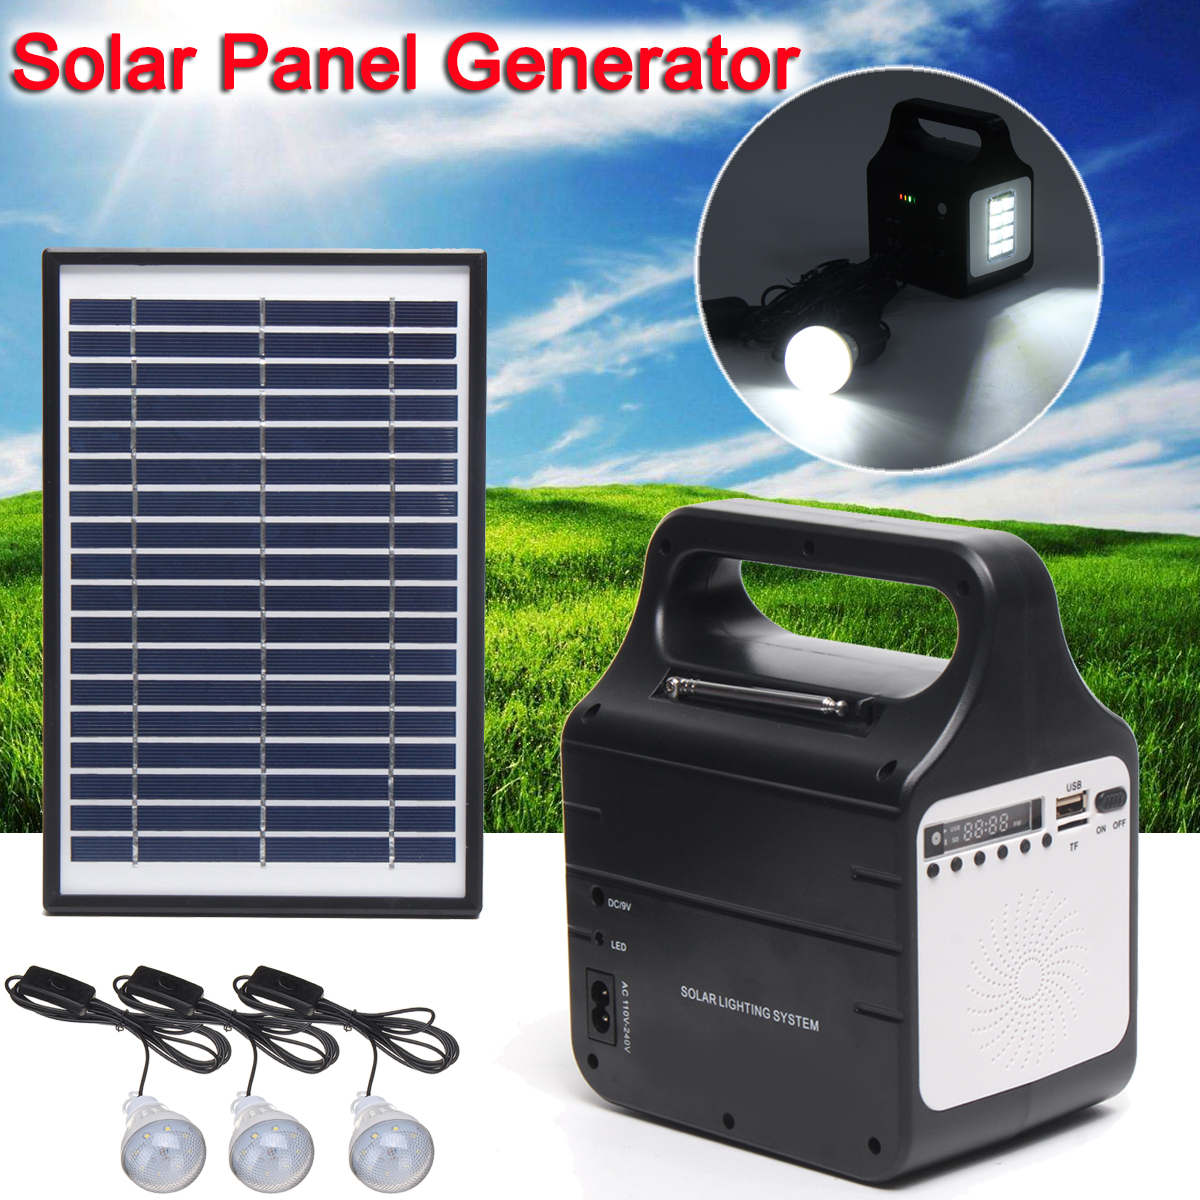 Portable Solar Panel Generator Home Outdoor Power System Energy Storage LED Light USB Charging Support USB Disk/SD Card/FM Radio